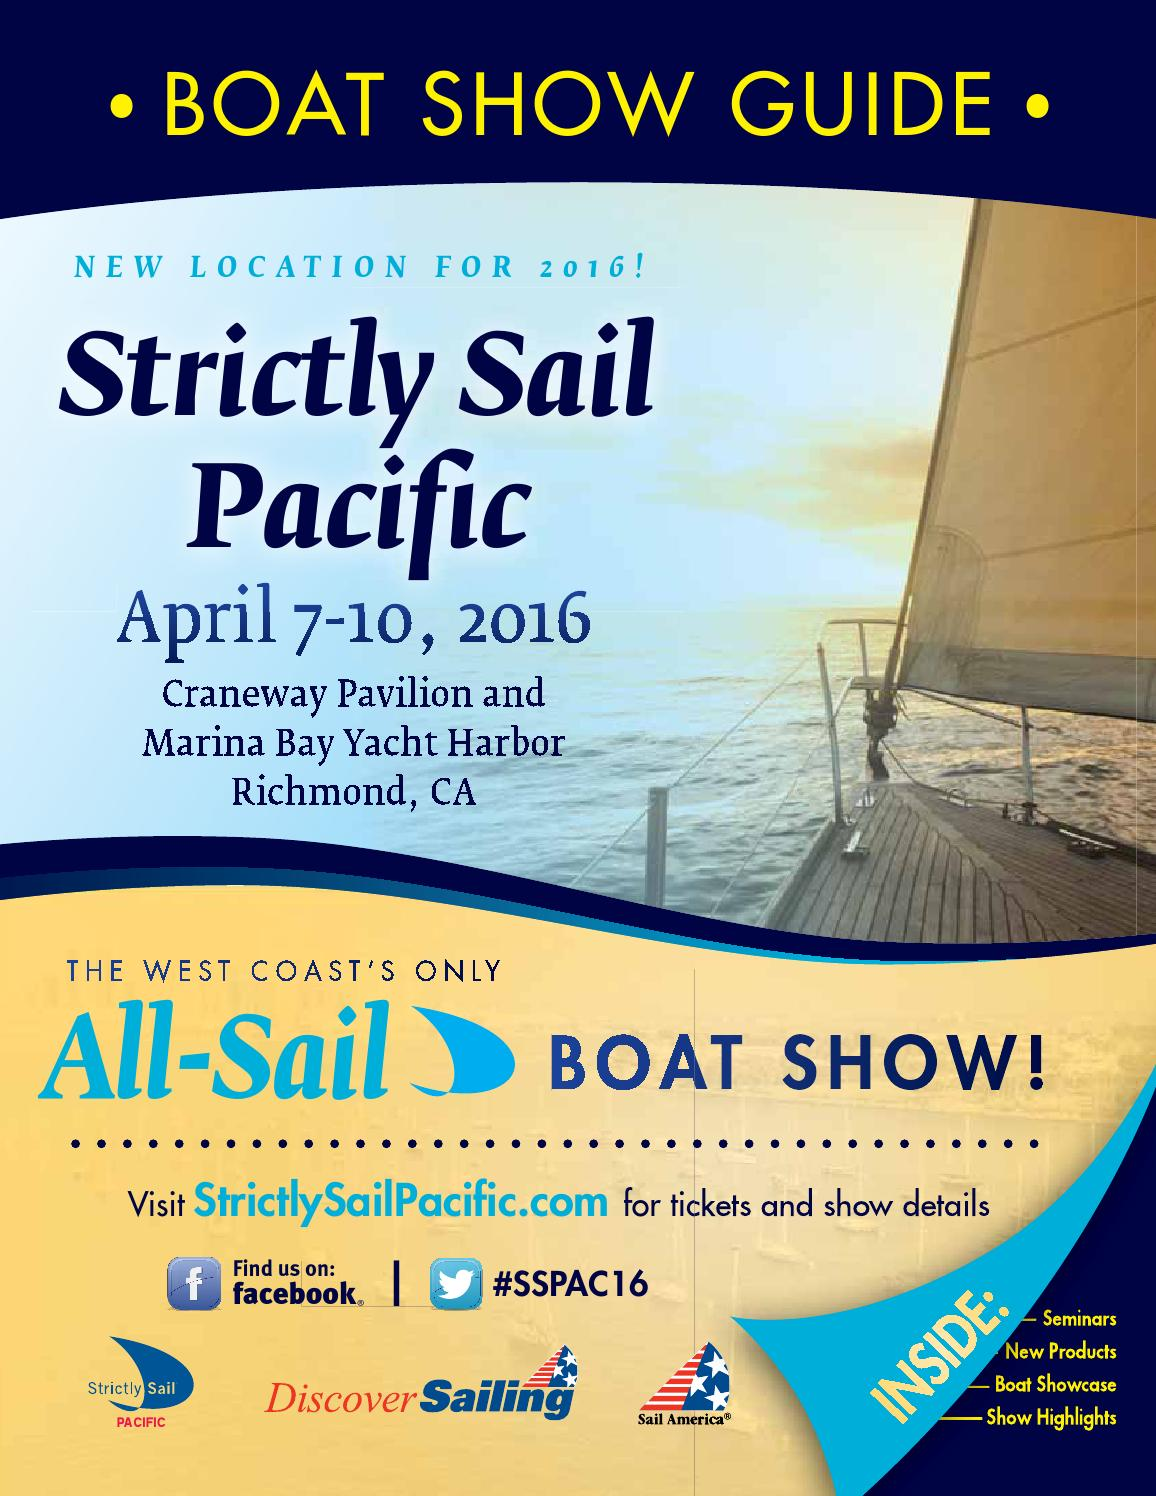 Strictly Sail Pacific 2016 By Latitude 38 Media Llc Issuu Maclube Electric Fuel Pump Instruction Sheet